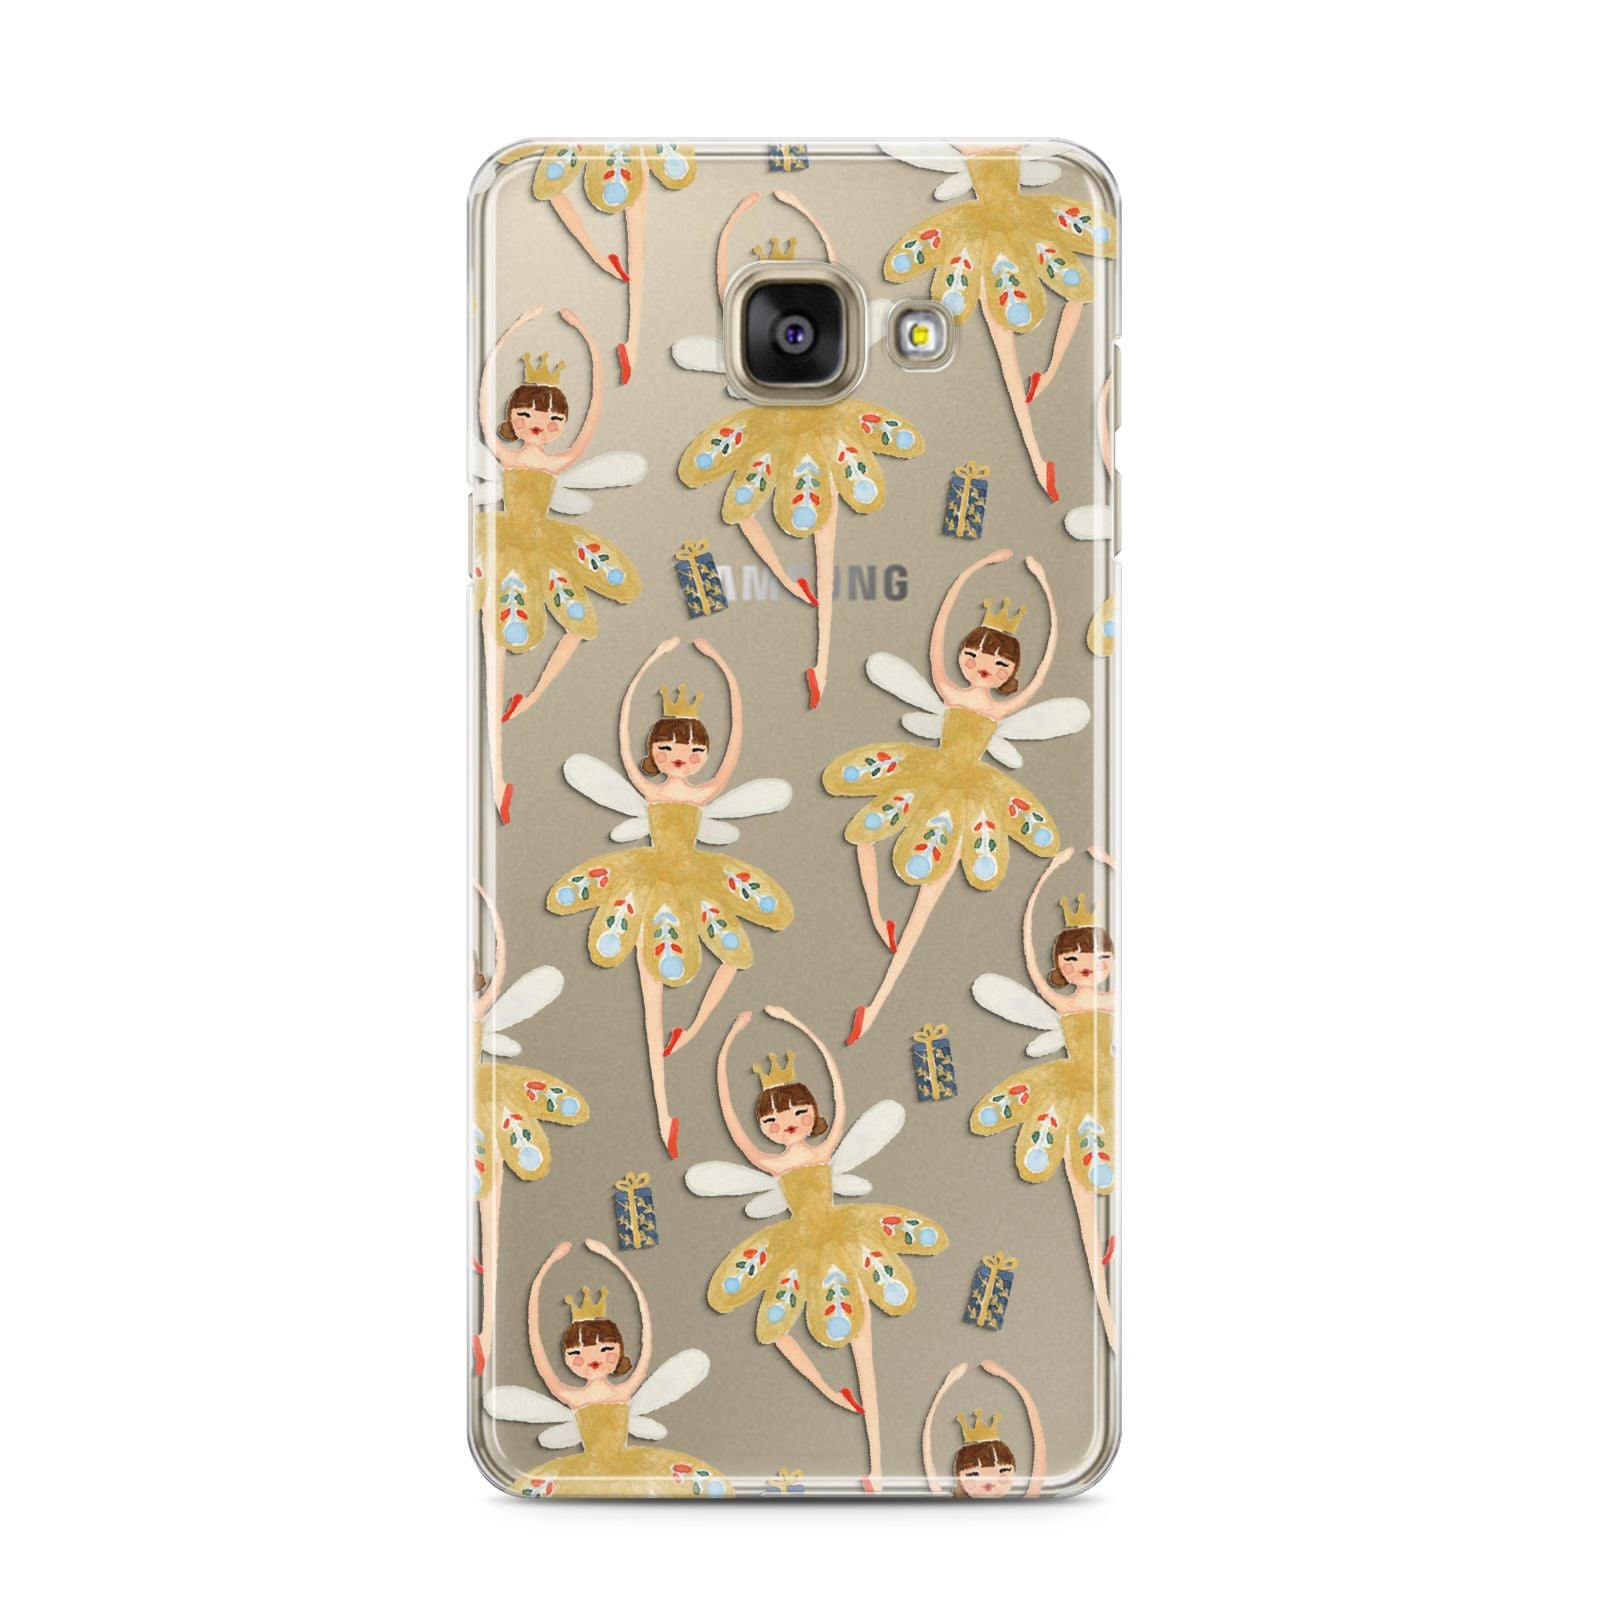 Dancing ballerina princess Samsung Galaxy A3 2016 Case on gold phone